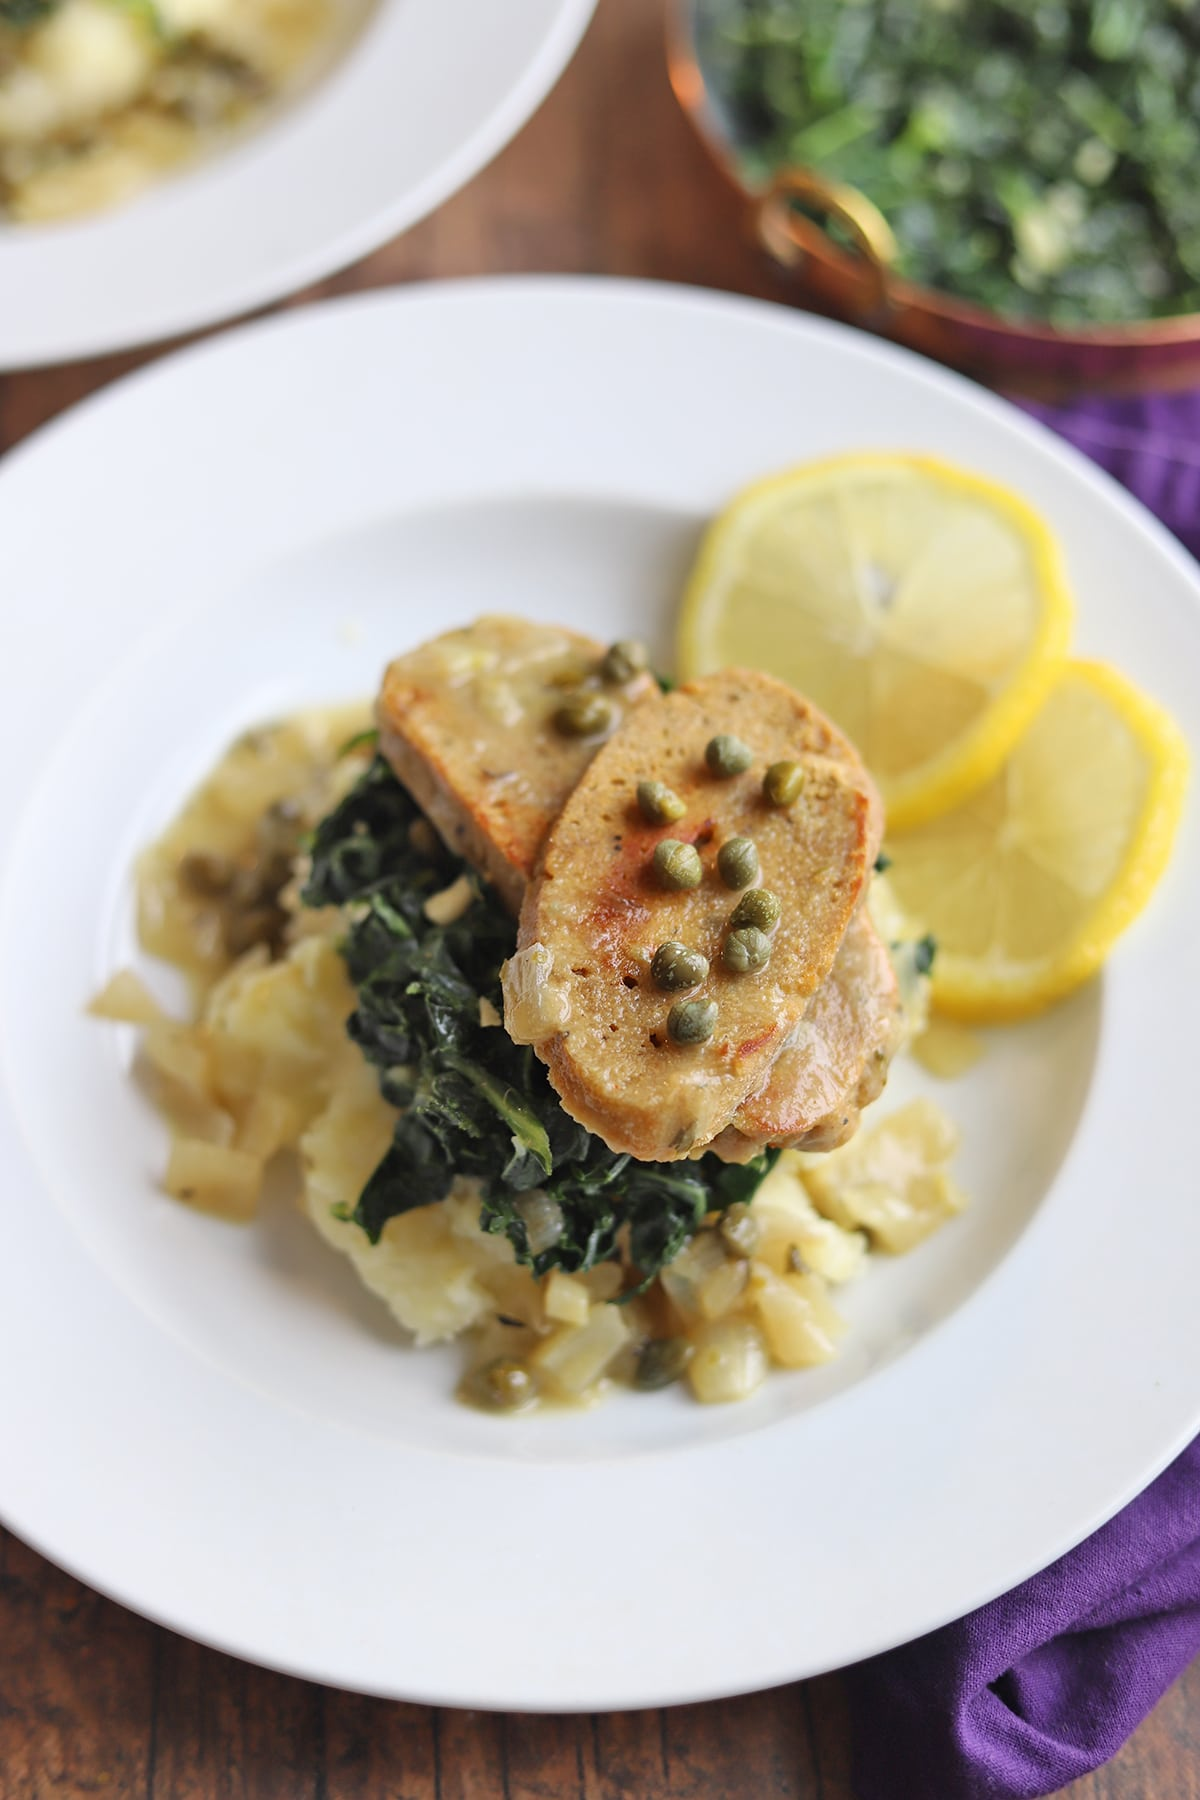 Mashed potatoes on plate, topped with seitan piccata, and sauteed kale.